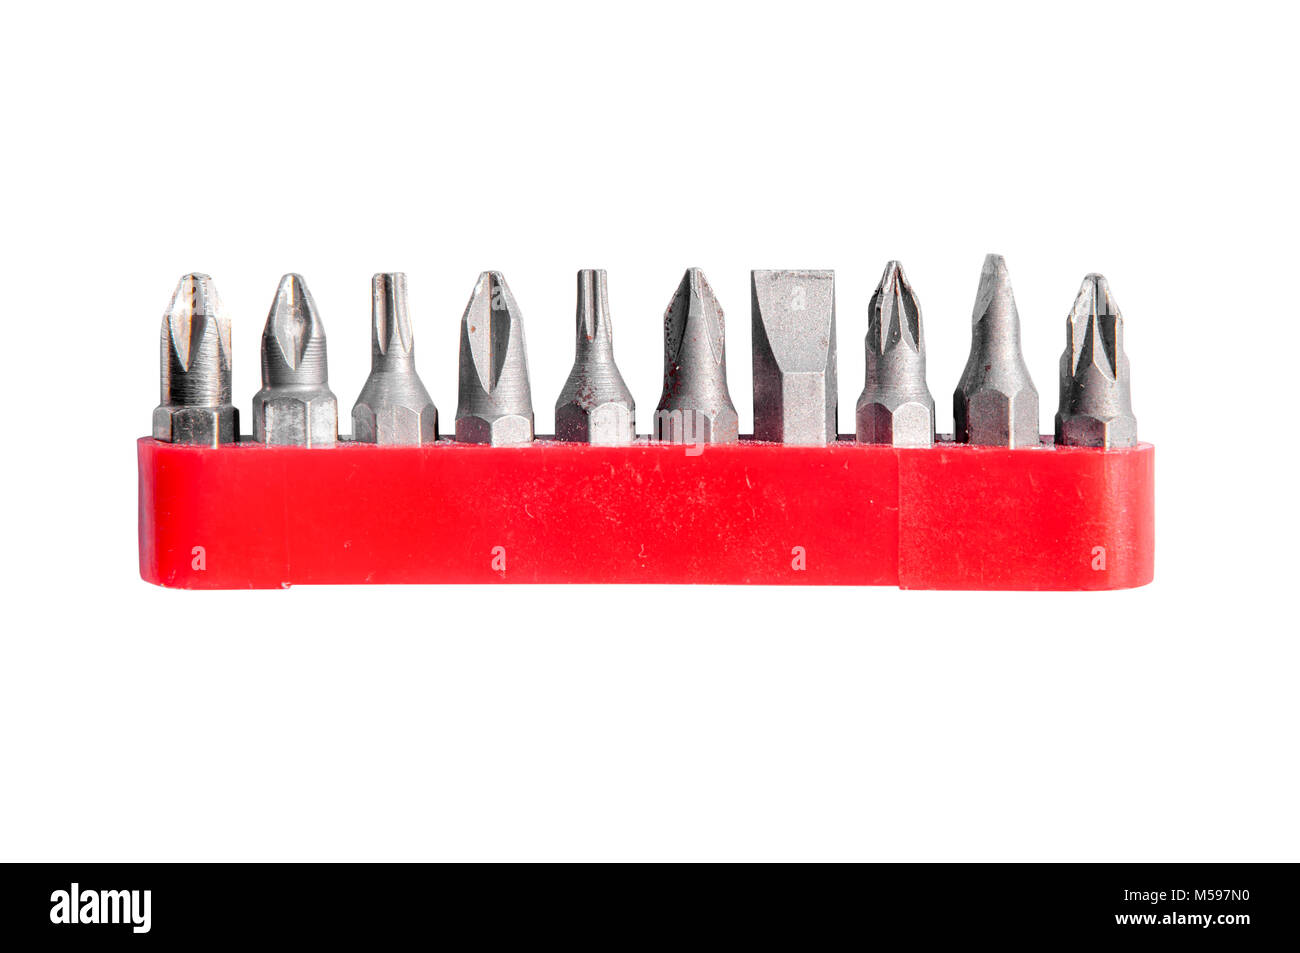 Chrome industrial screwdriver set with various bits and bit extension and replaceable head - Stock Image